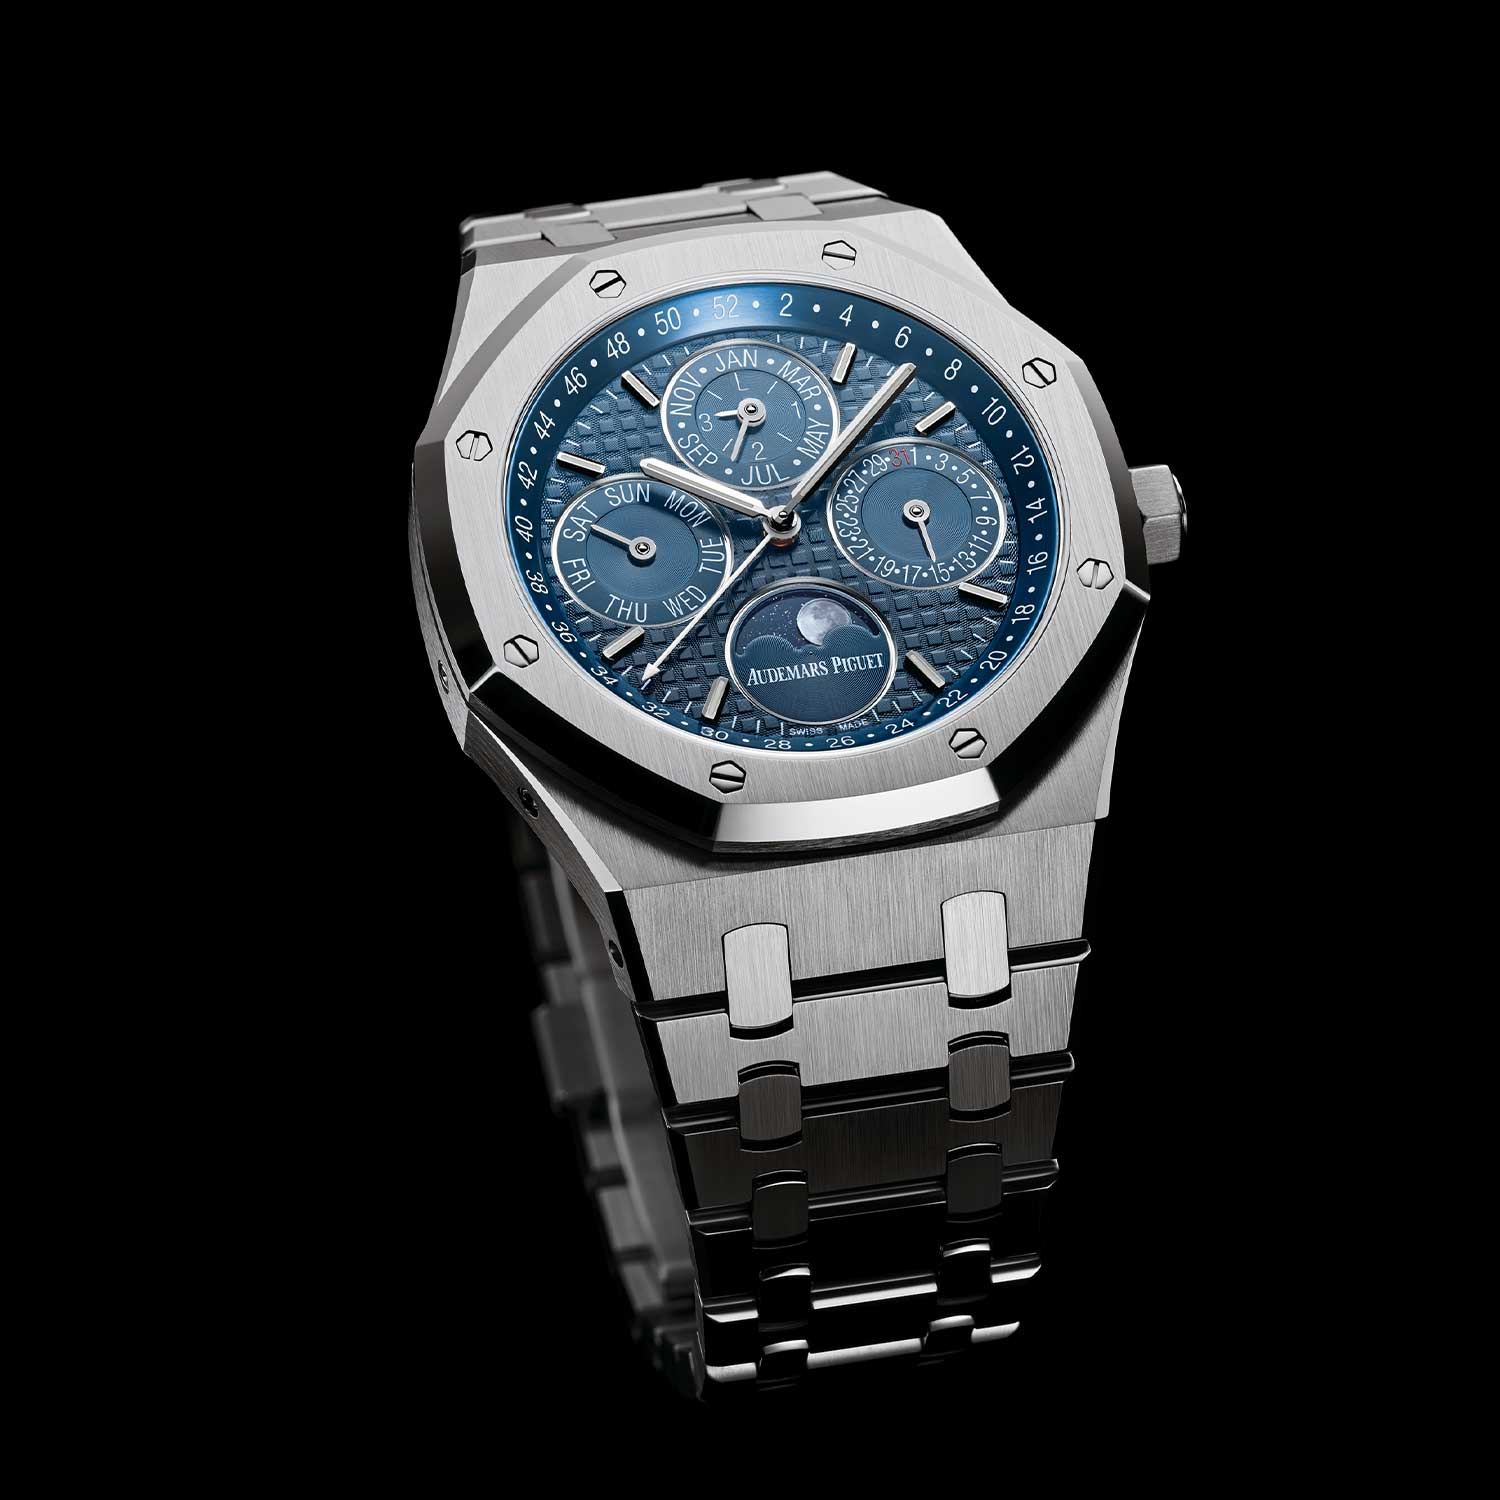 The Royal Oak Perpetual Calendar ref. 26574ST in steel with a blue dial, launched in 2015